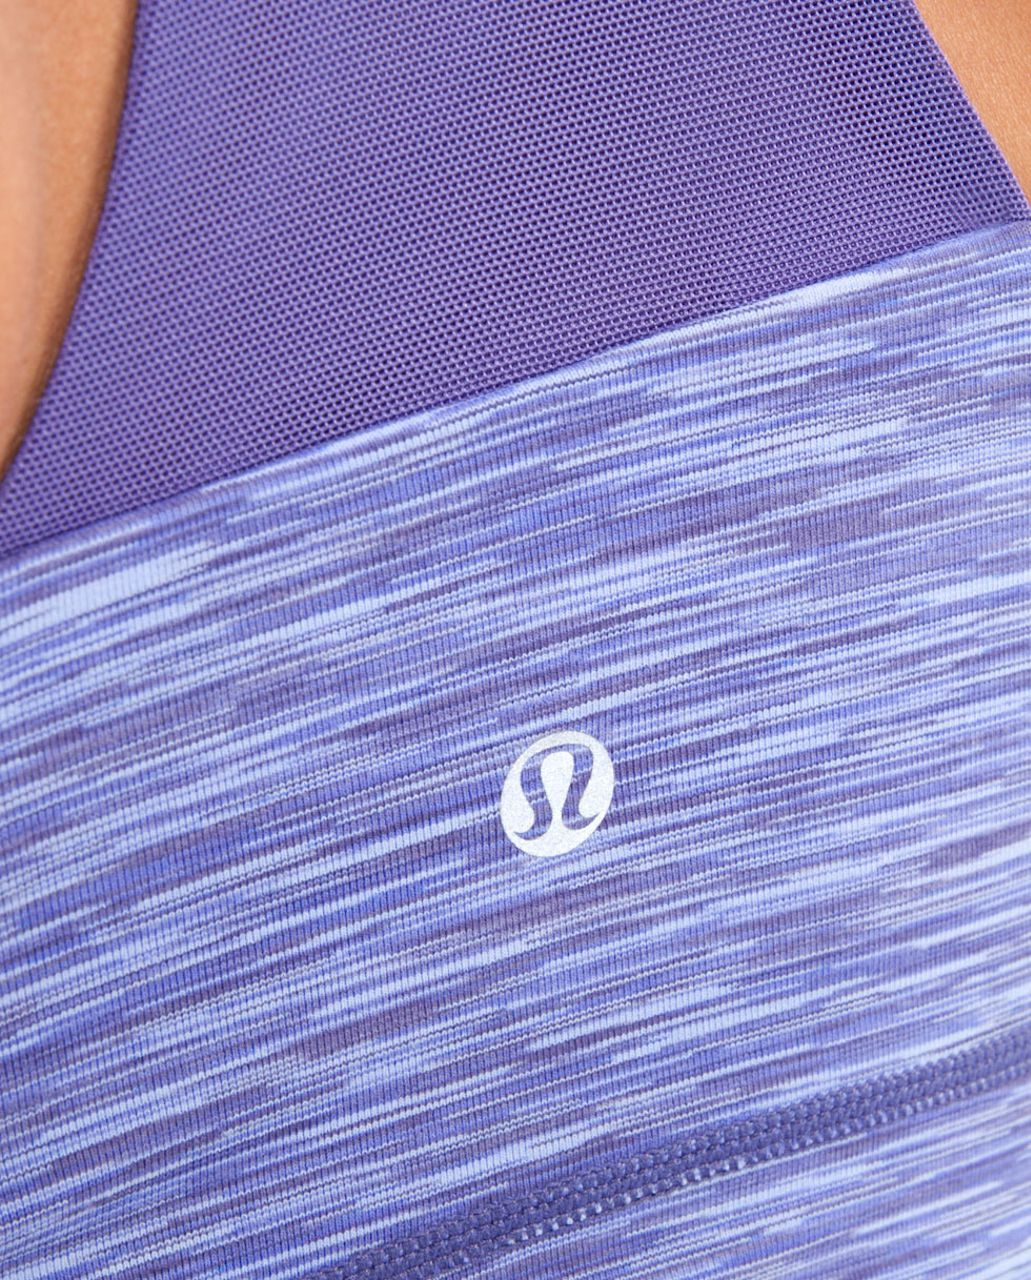 Lululemon Scoop Neck Tank - Royalty Space Dye /  Royalty